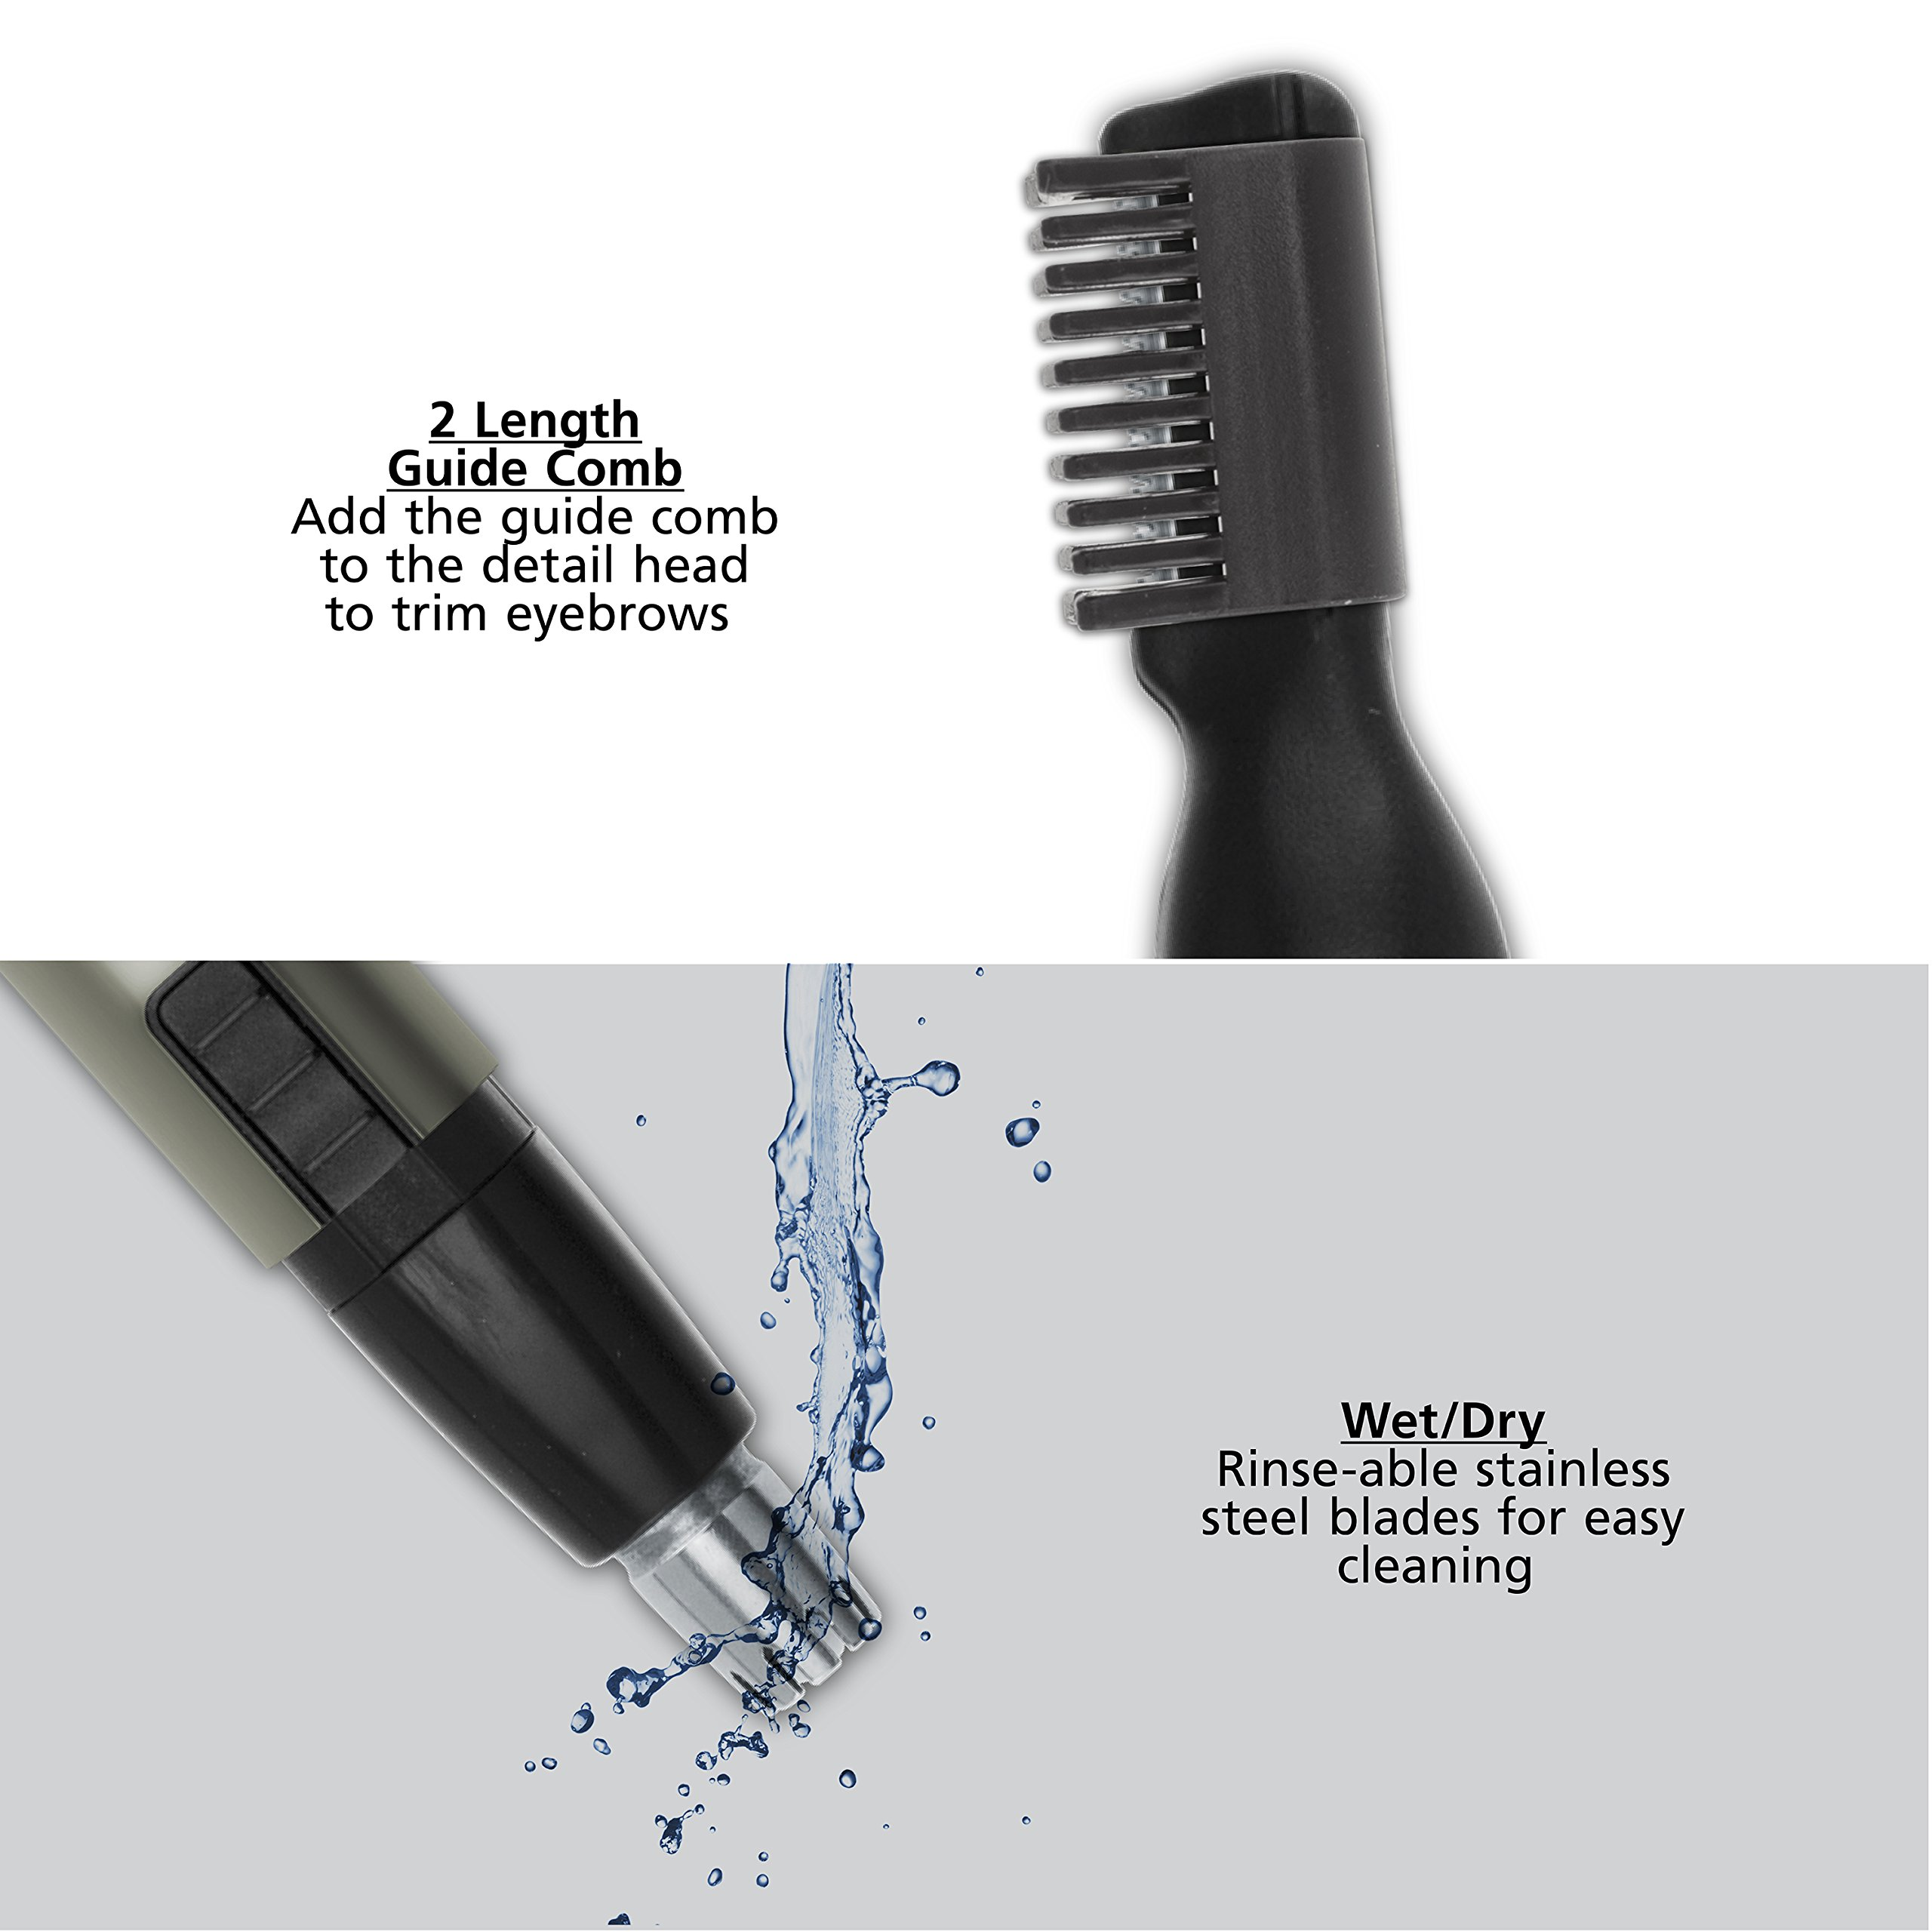 Wahl Lithium Micro Groomsman Trimmer, Compact, Cordless, Battery Operated, Includes Guide Comb, Detail Trimmer for Eyebrows, Sideburns, and Neckline Trimming, and Eye and Nose Hair Trimmer, 5640-1001 by Wahl (Image #3)